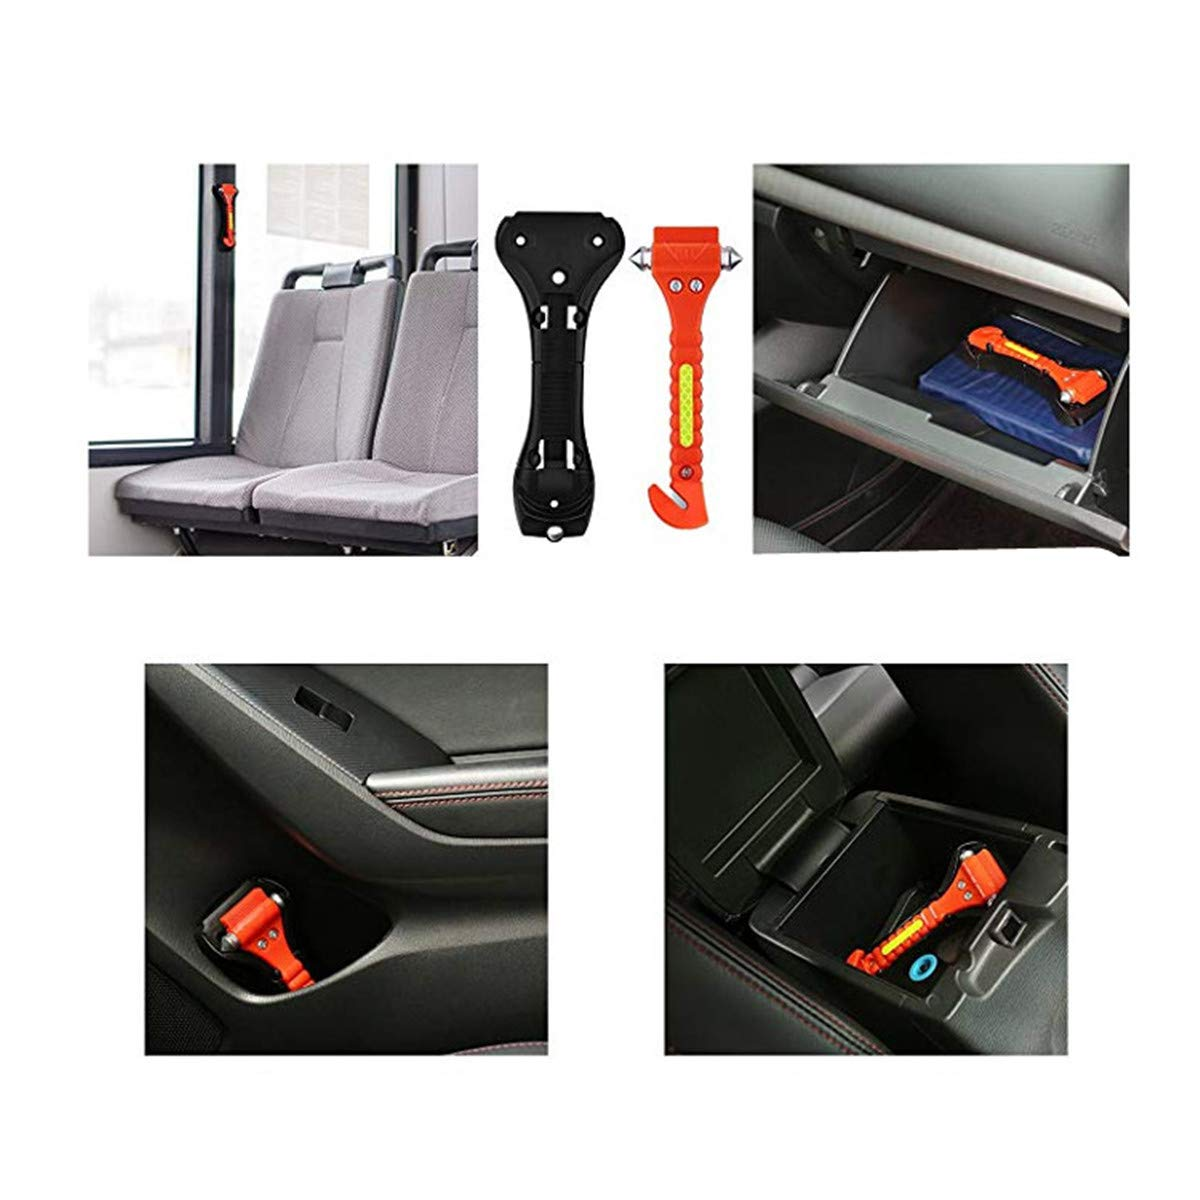 KAFEEK Safety Hammer 8-Pack Life Saving Survival Kit Emergency Escape Tool with Car Window Breaker and Seat Belt Cutter